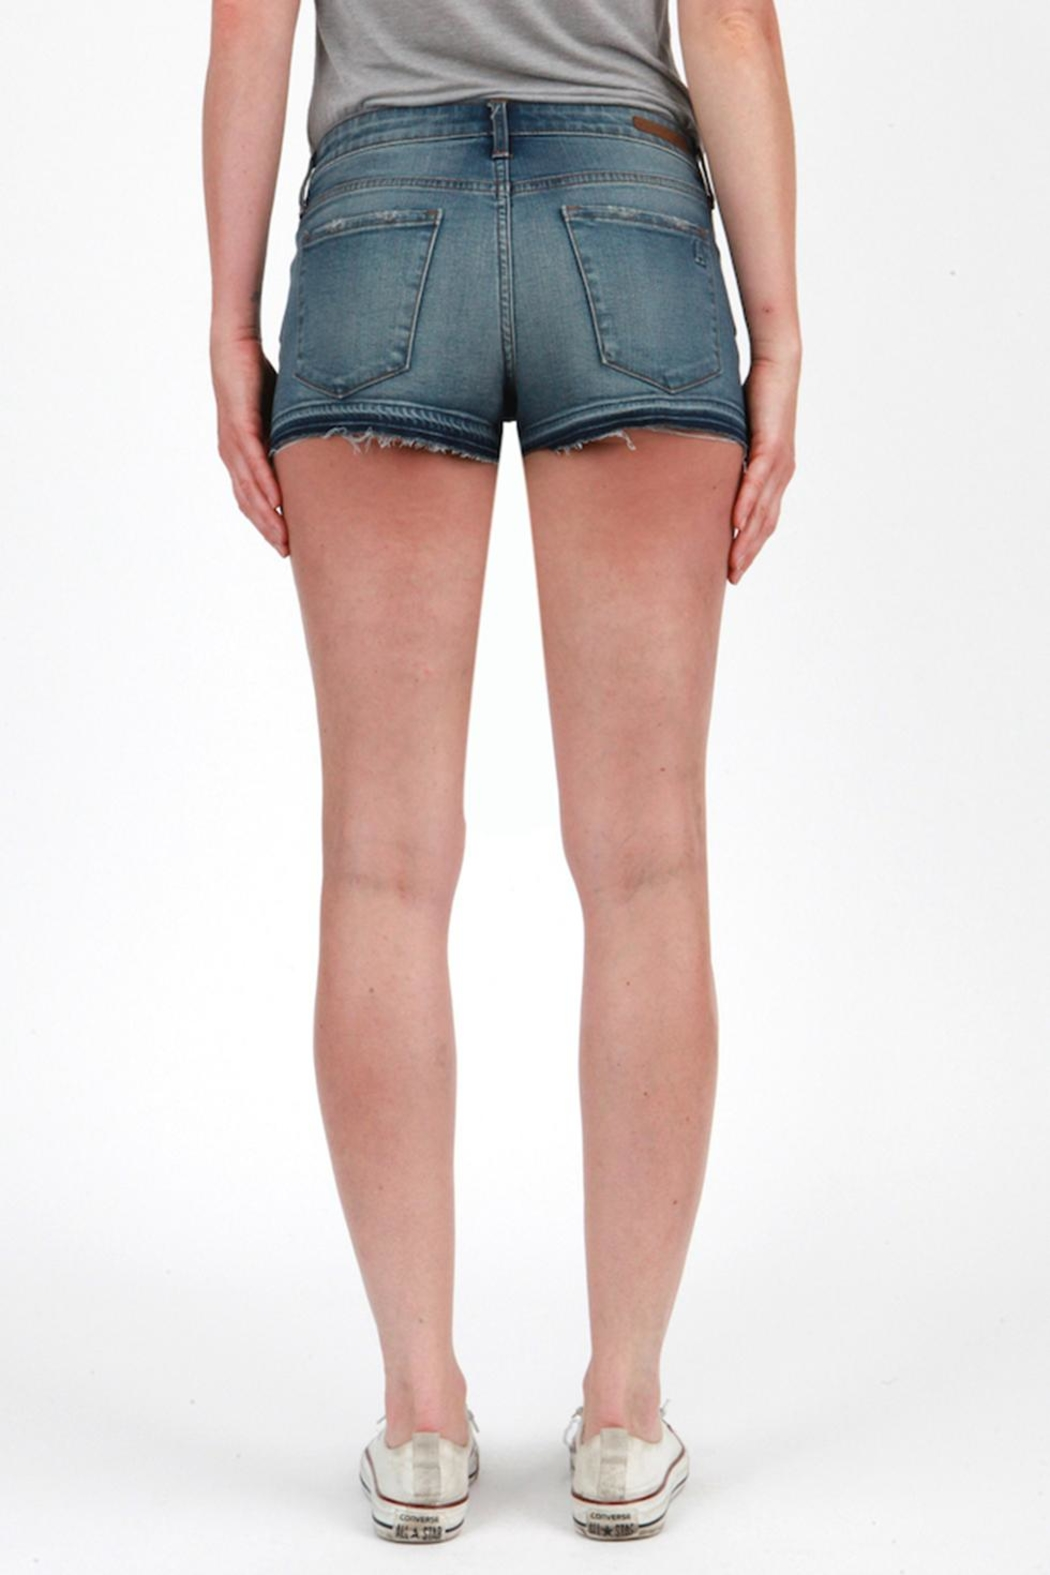 Articles of Society Jamin Jean Shorts - Side Cropped Image